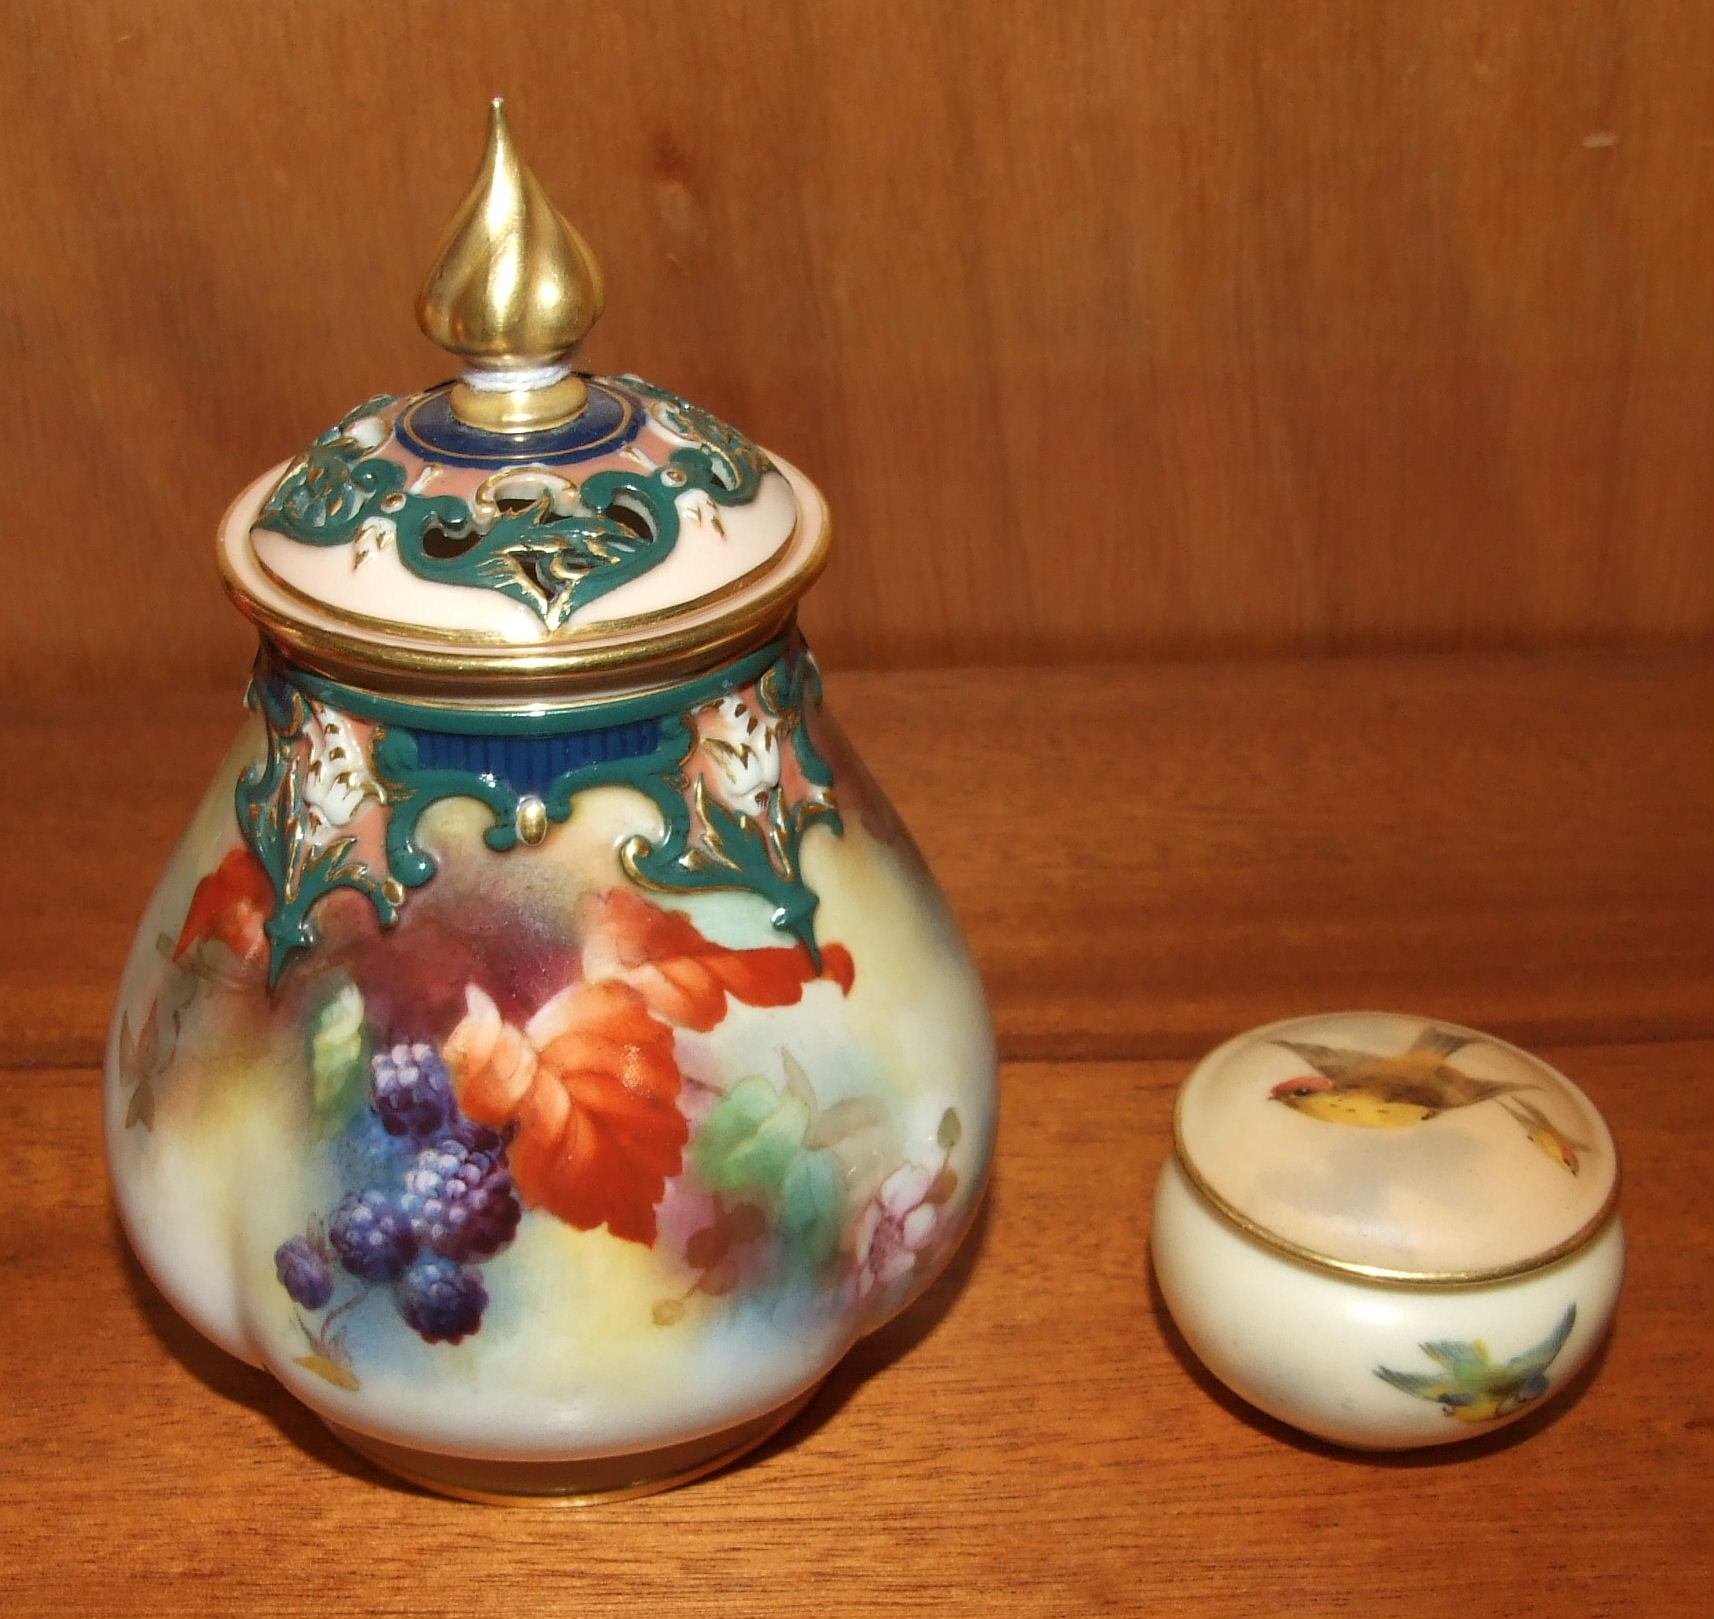 Lot 120 - A Royal Worcester ovoid quatre-lobed pot pourri vase and cover painted with blackberries, leaves and